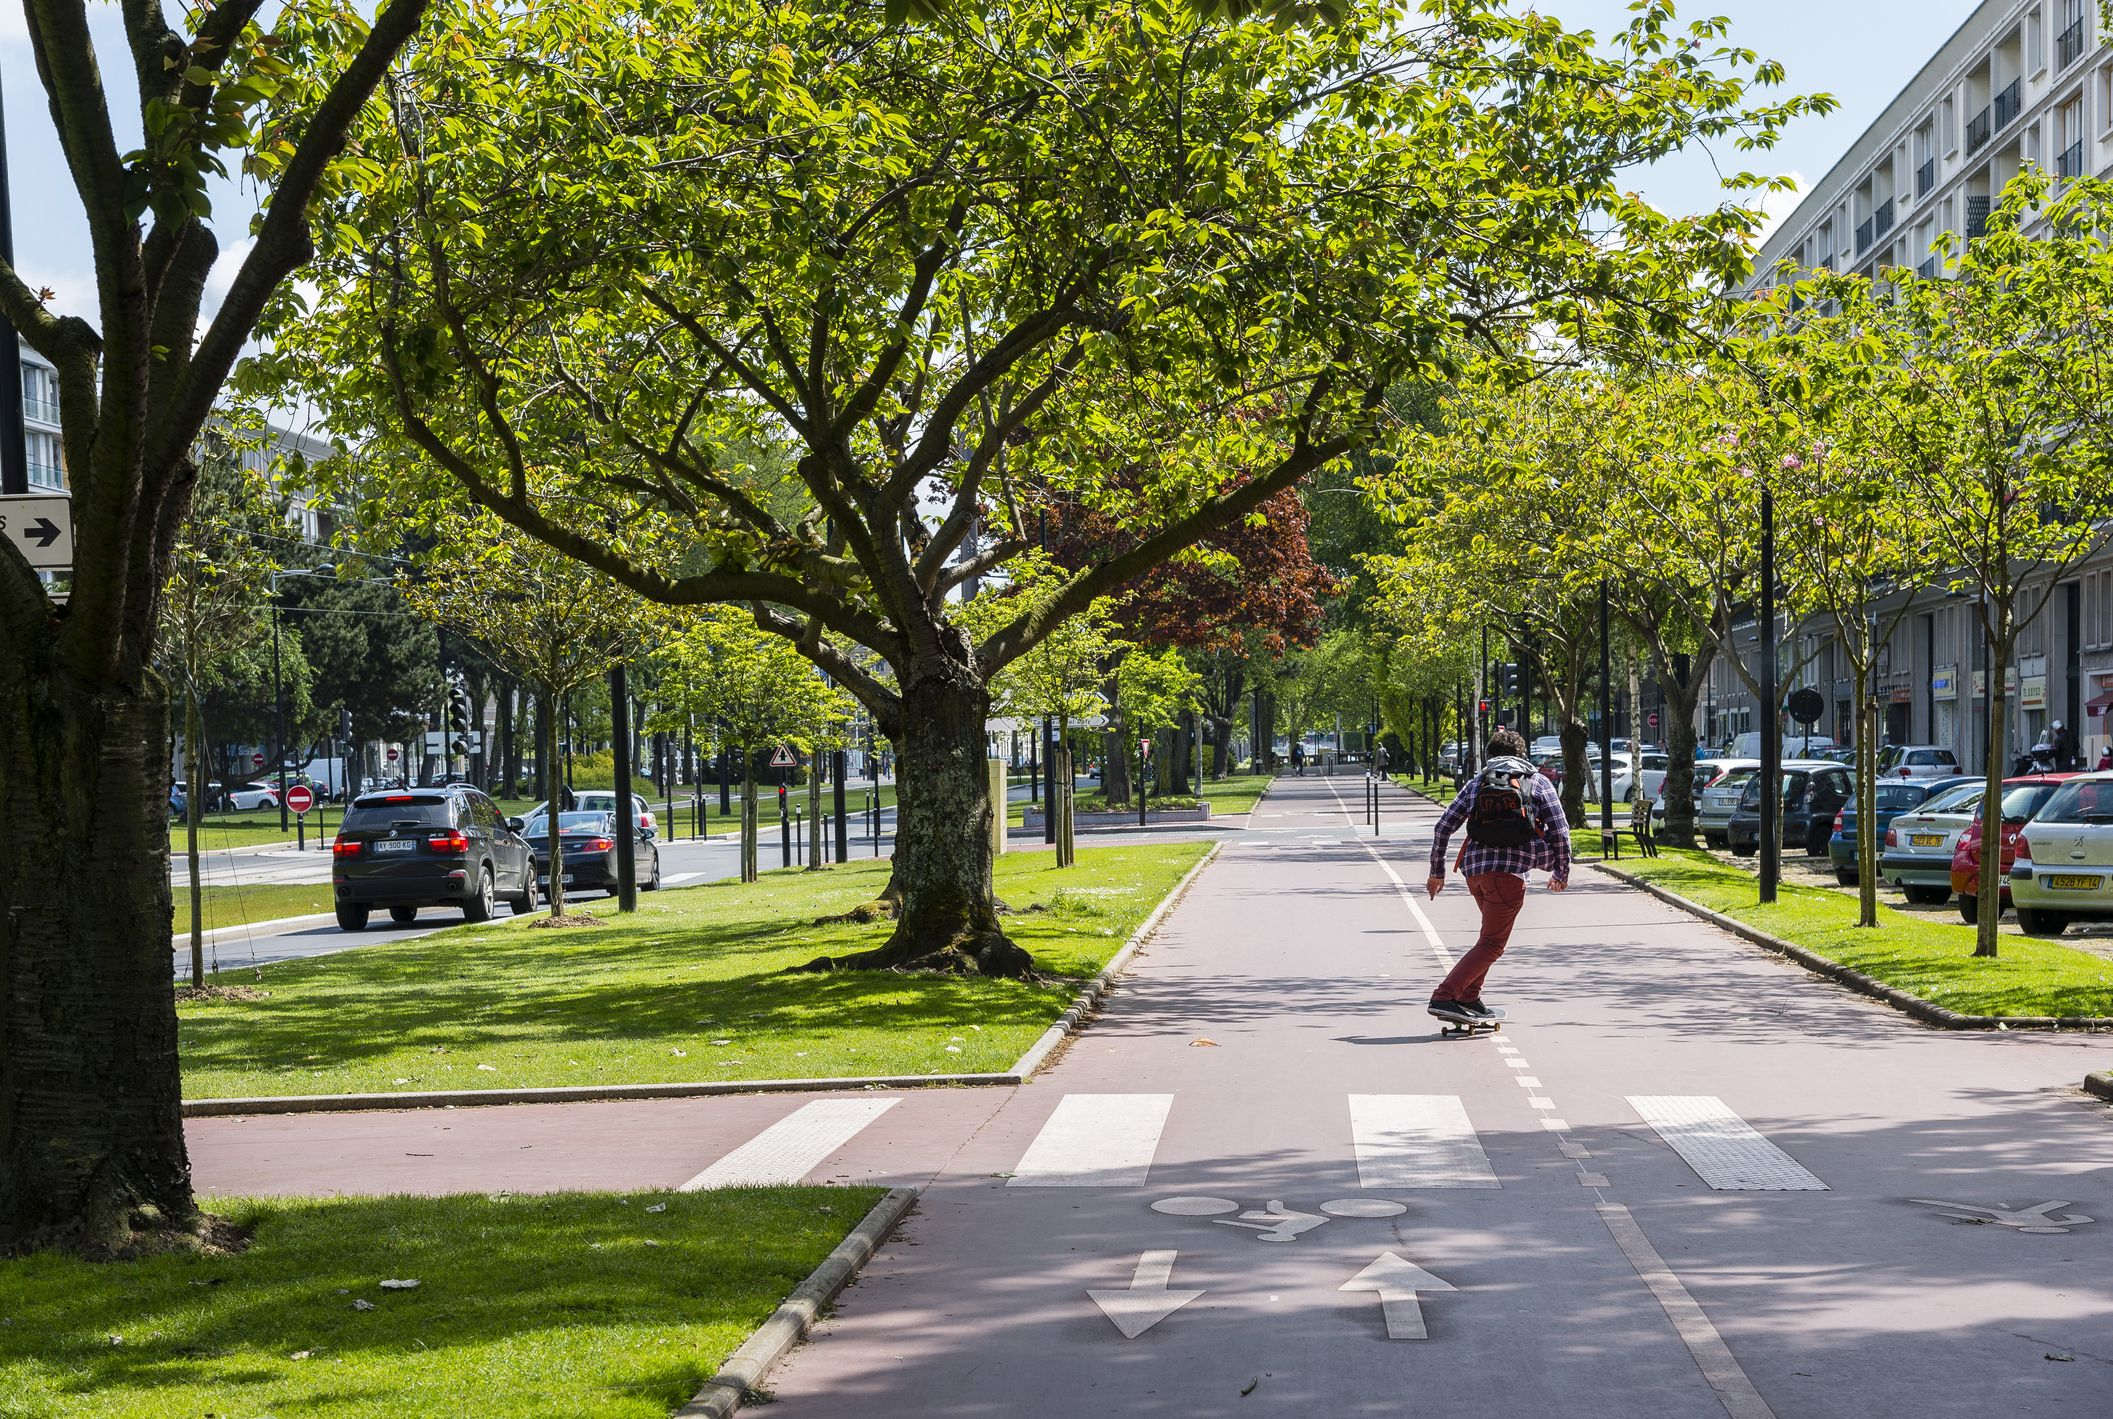 No, Bike Lanes Aren't for Everyone